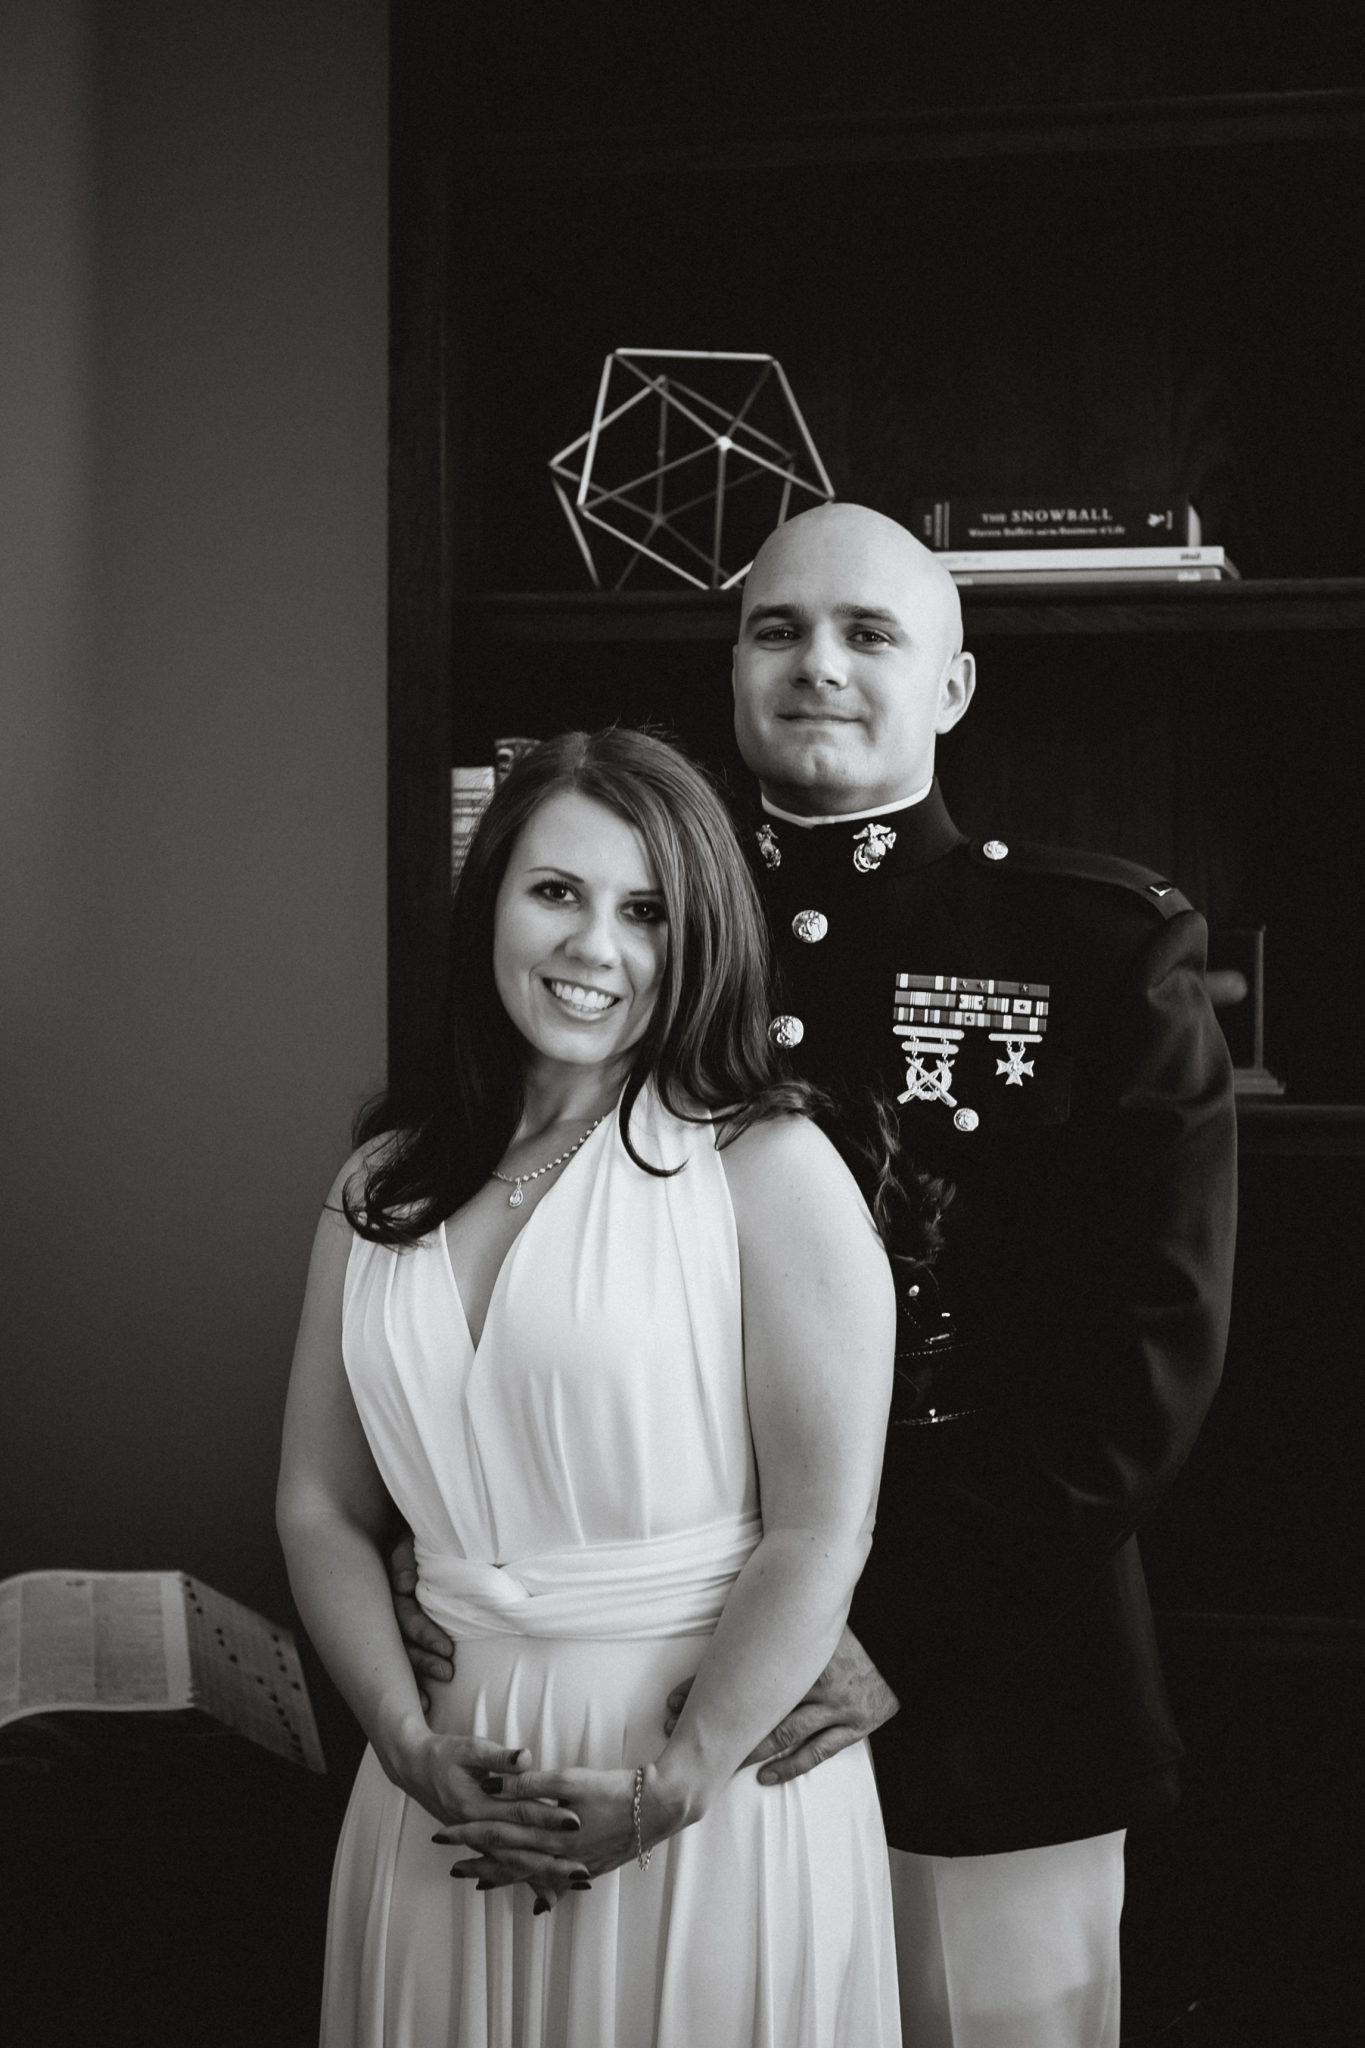 Formal portrait of the wedding couple indoors